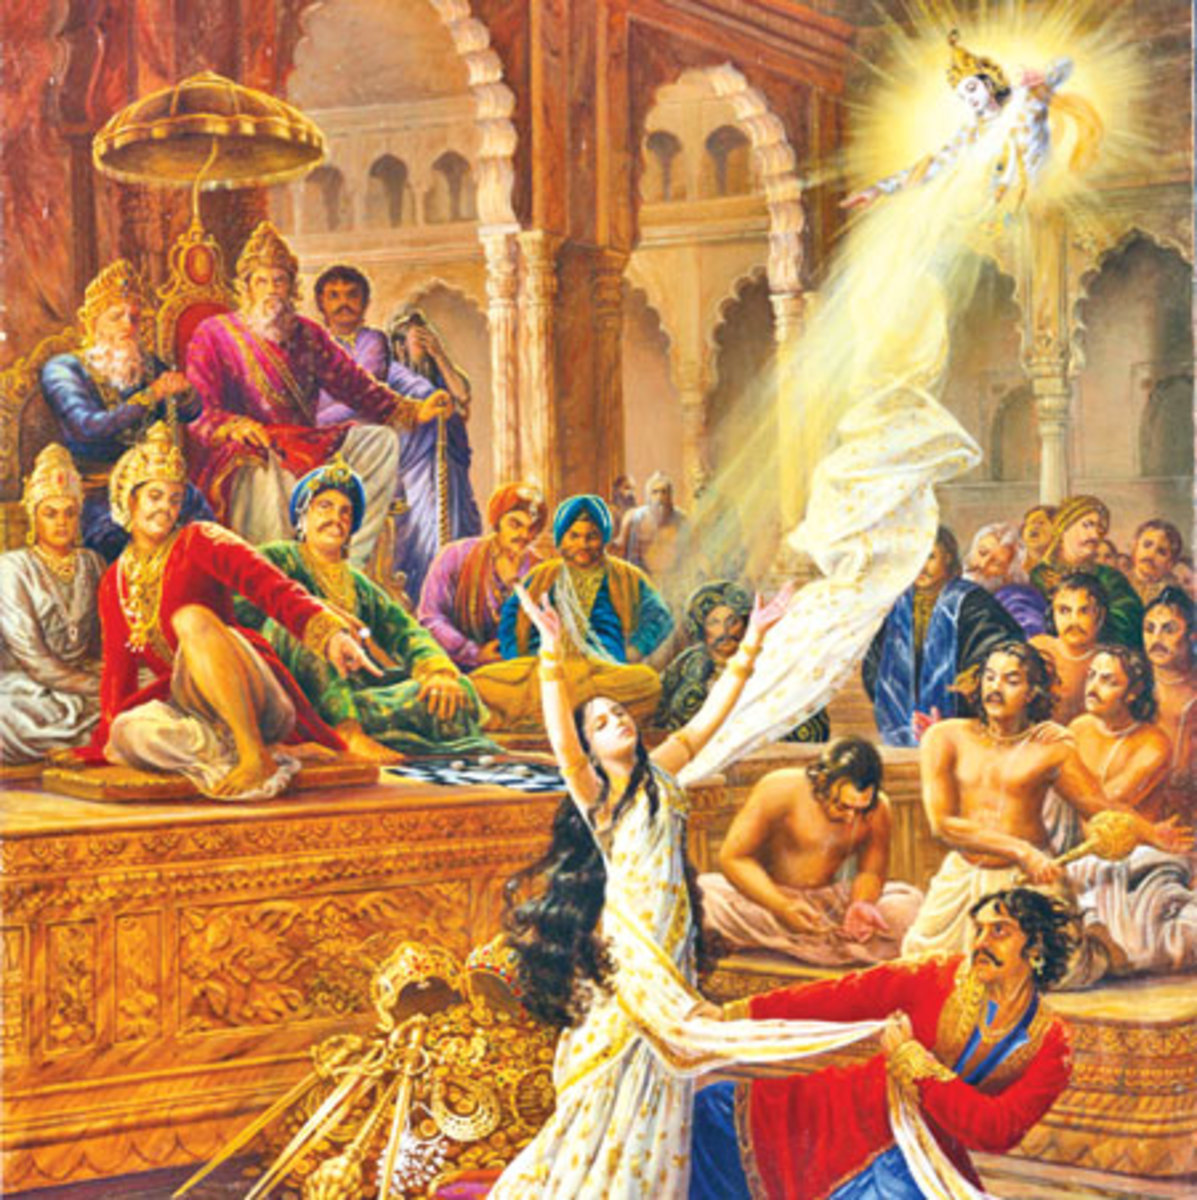 Draupadi is miraculously protected by Lord Krishna and Dushasana finds that as he continues to unwrap the layers of her sari, the amount of fabric covering her never lessens.